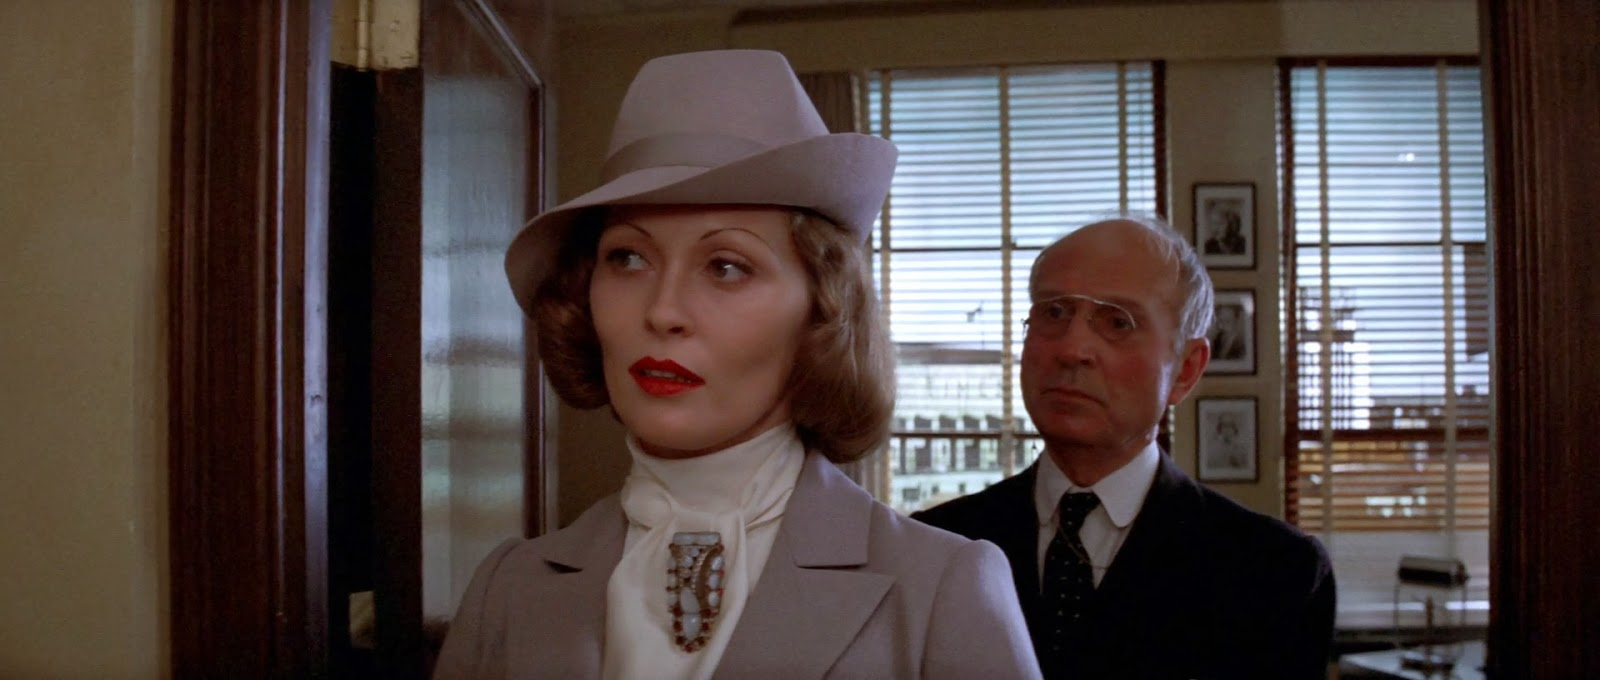 the character analysis of evelyn mulwray and faye dunaways portrayal in chinatown In roman polanski's film, chinatown, it is the final part of the film that brings  about most controversy  to be evelyn mulwray (faye dunaway) who has him  investigate her  the death of this character then throws one into a quagmire of   it nonetheless depends on one's depiction of the ending as it is.